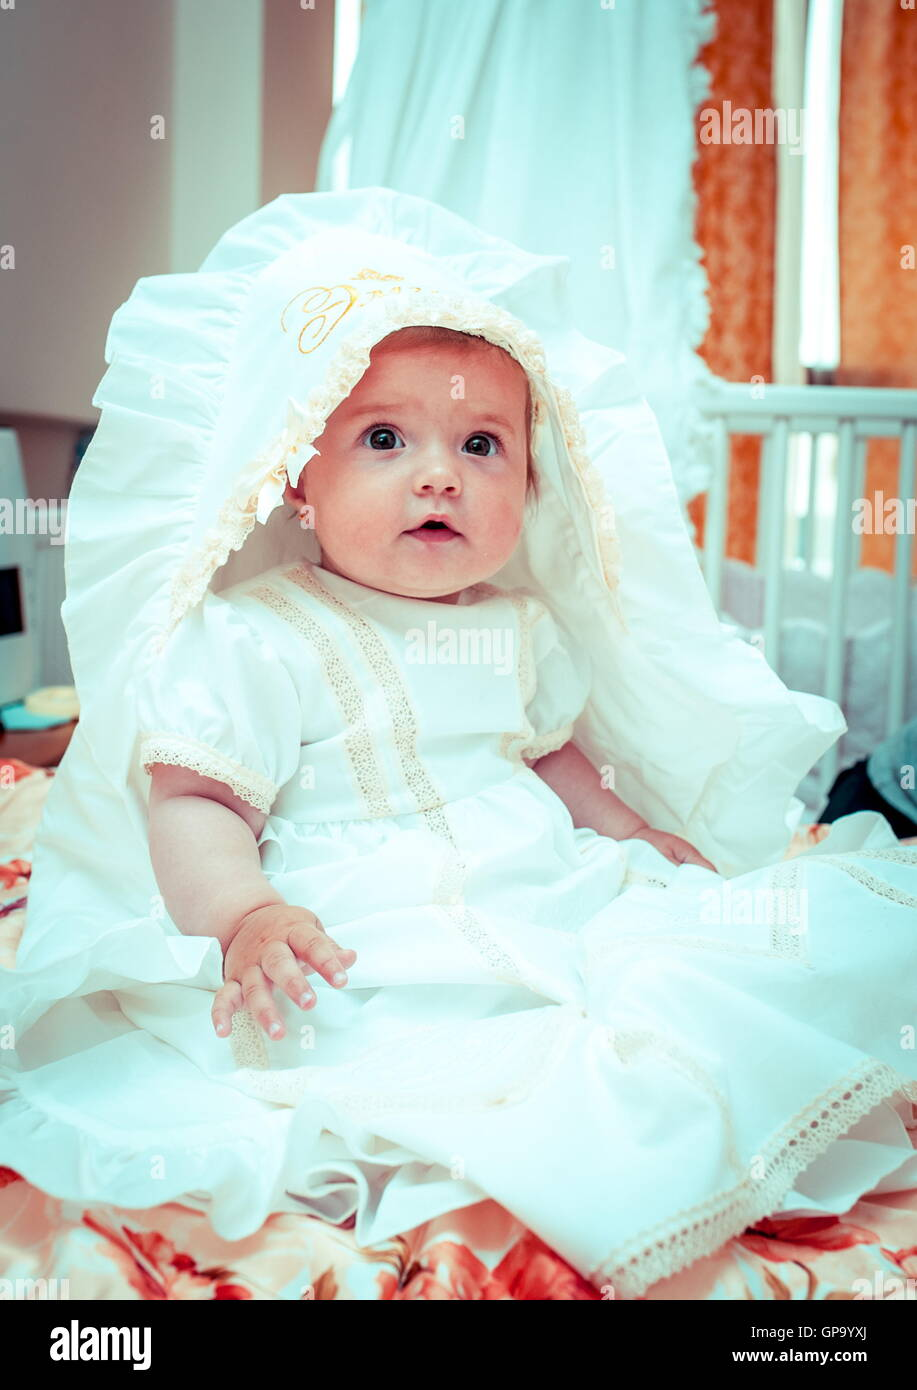 Little Baby Girl Wearing A Beautiful White Dress Waiting For Baptism